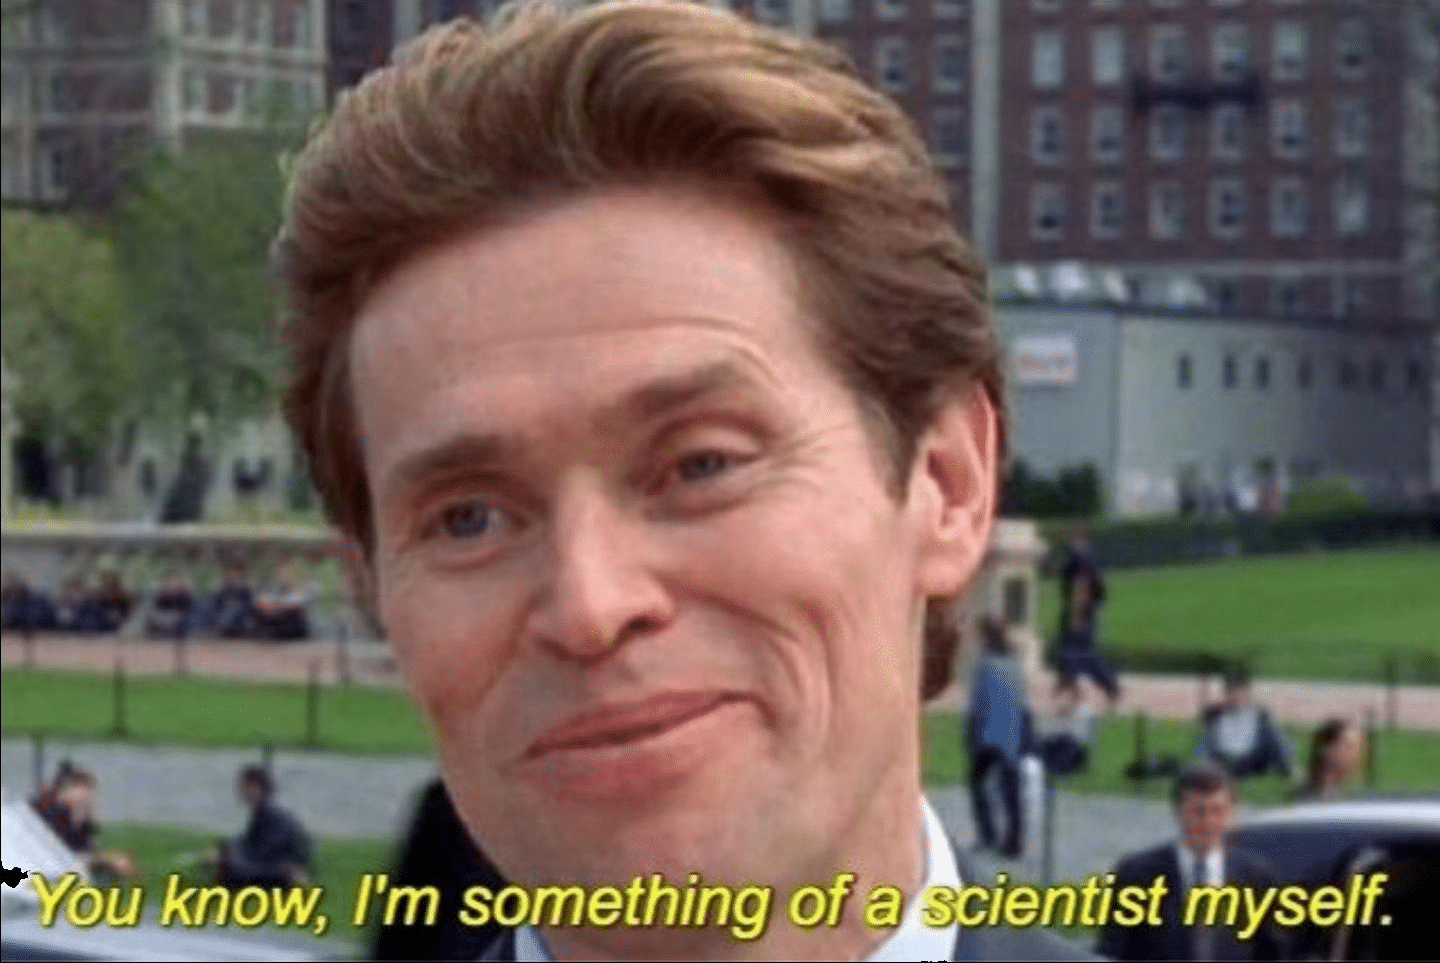 im something of a scientist myself spiderman meme template